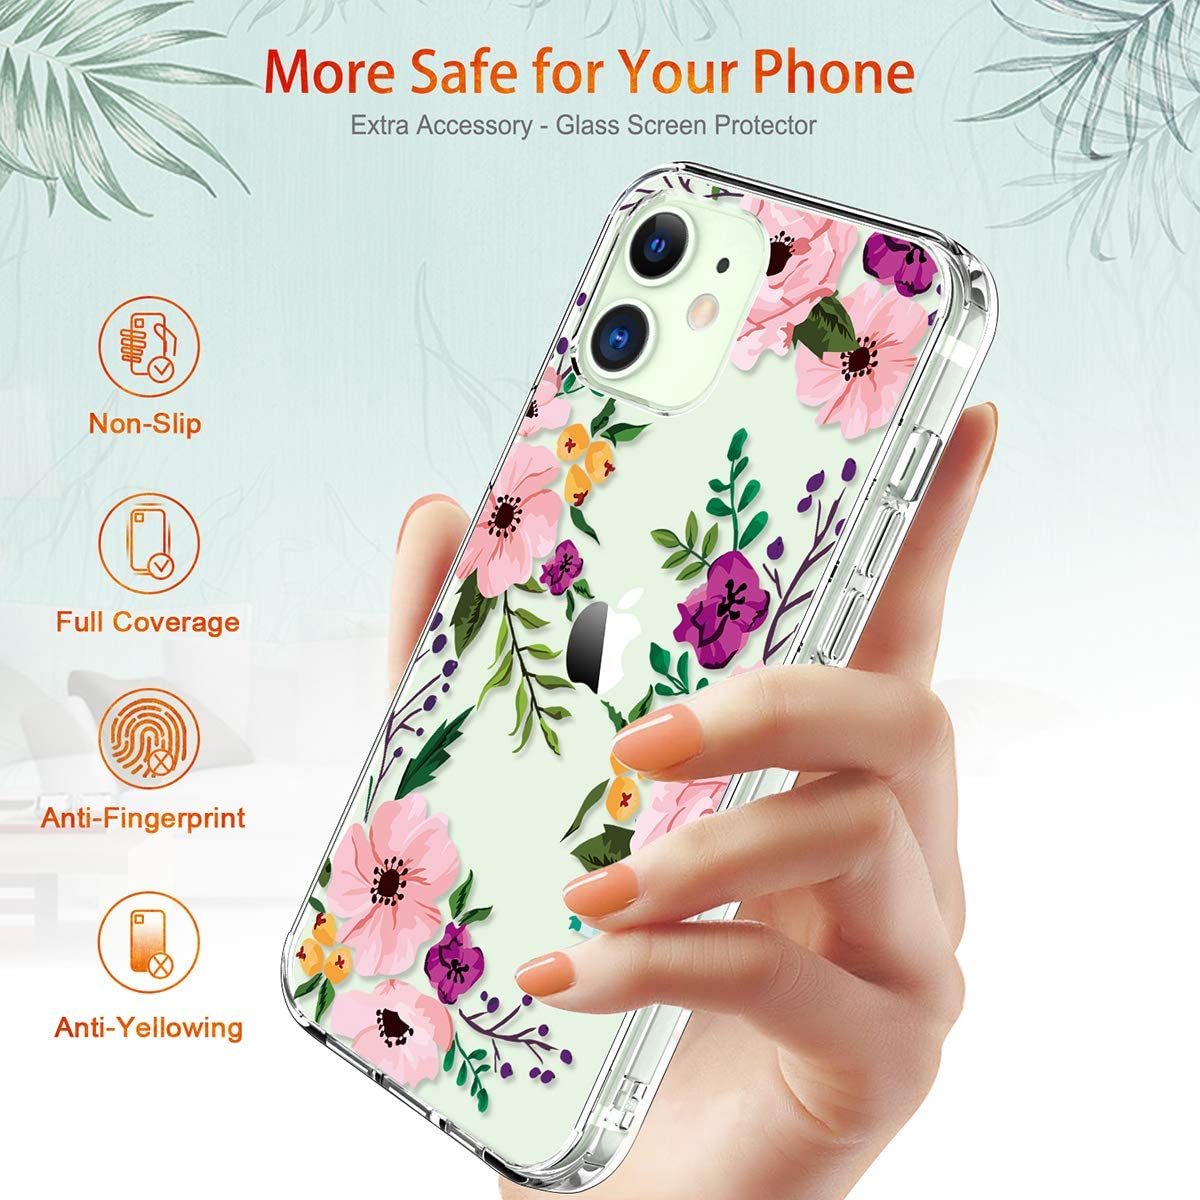 Shockproof Hard Case with TPU Bumper Cover Phone Case for iPhone 12, Small Flowers